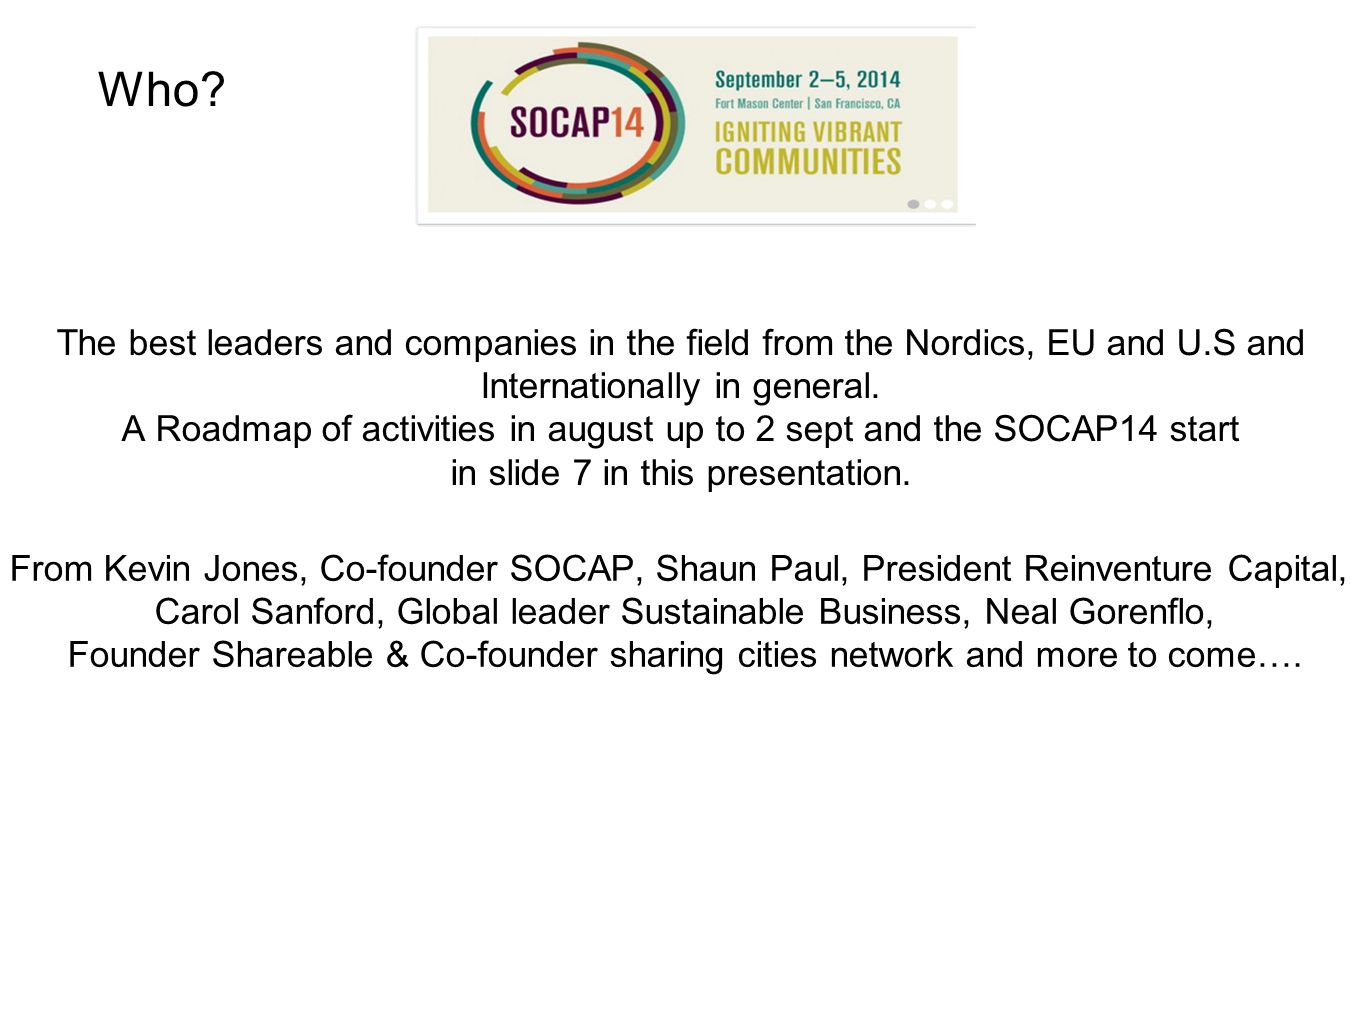 Who? The best leaders and companies in the field from the Nordics, EU and U.S and Internationally in general. A Roadmap of activities in august up to